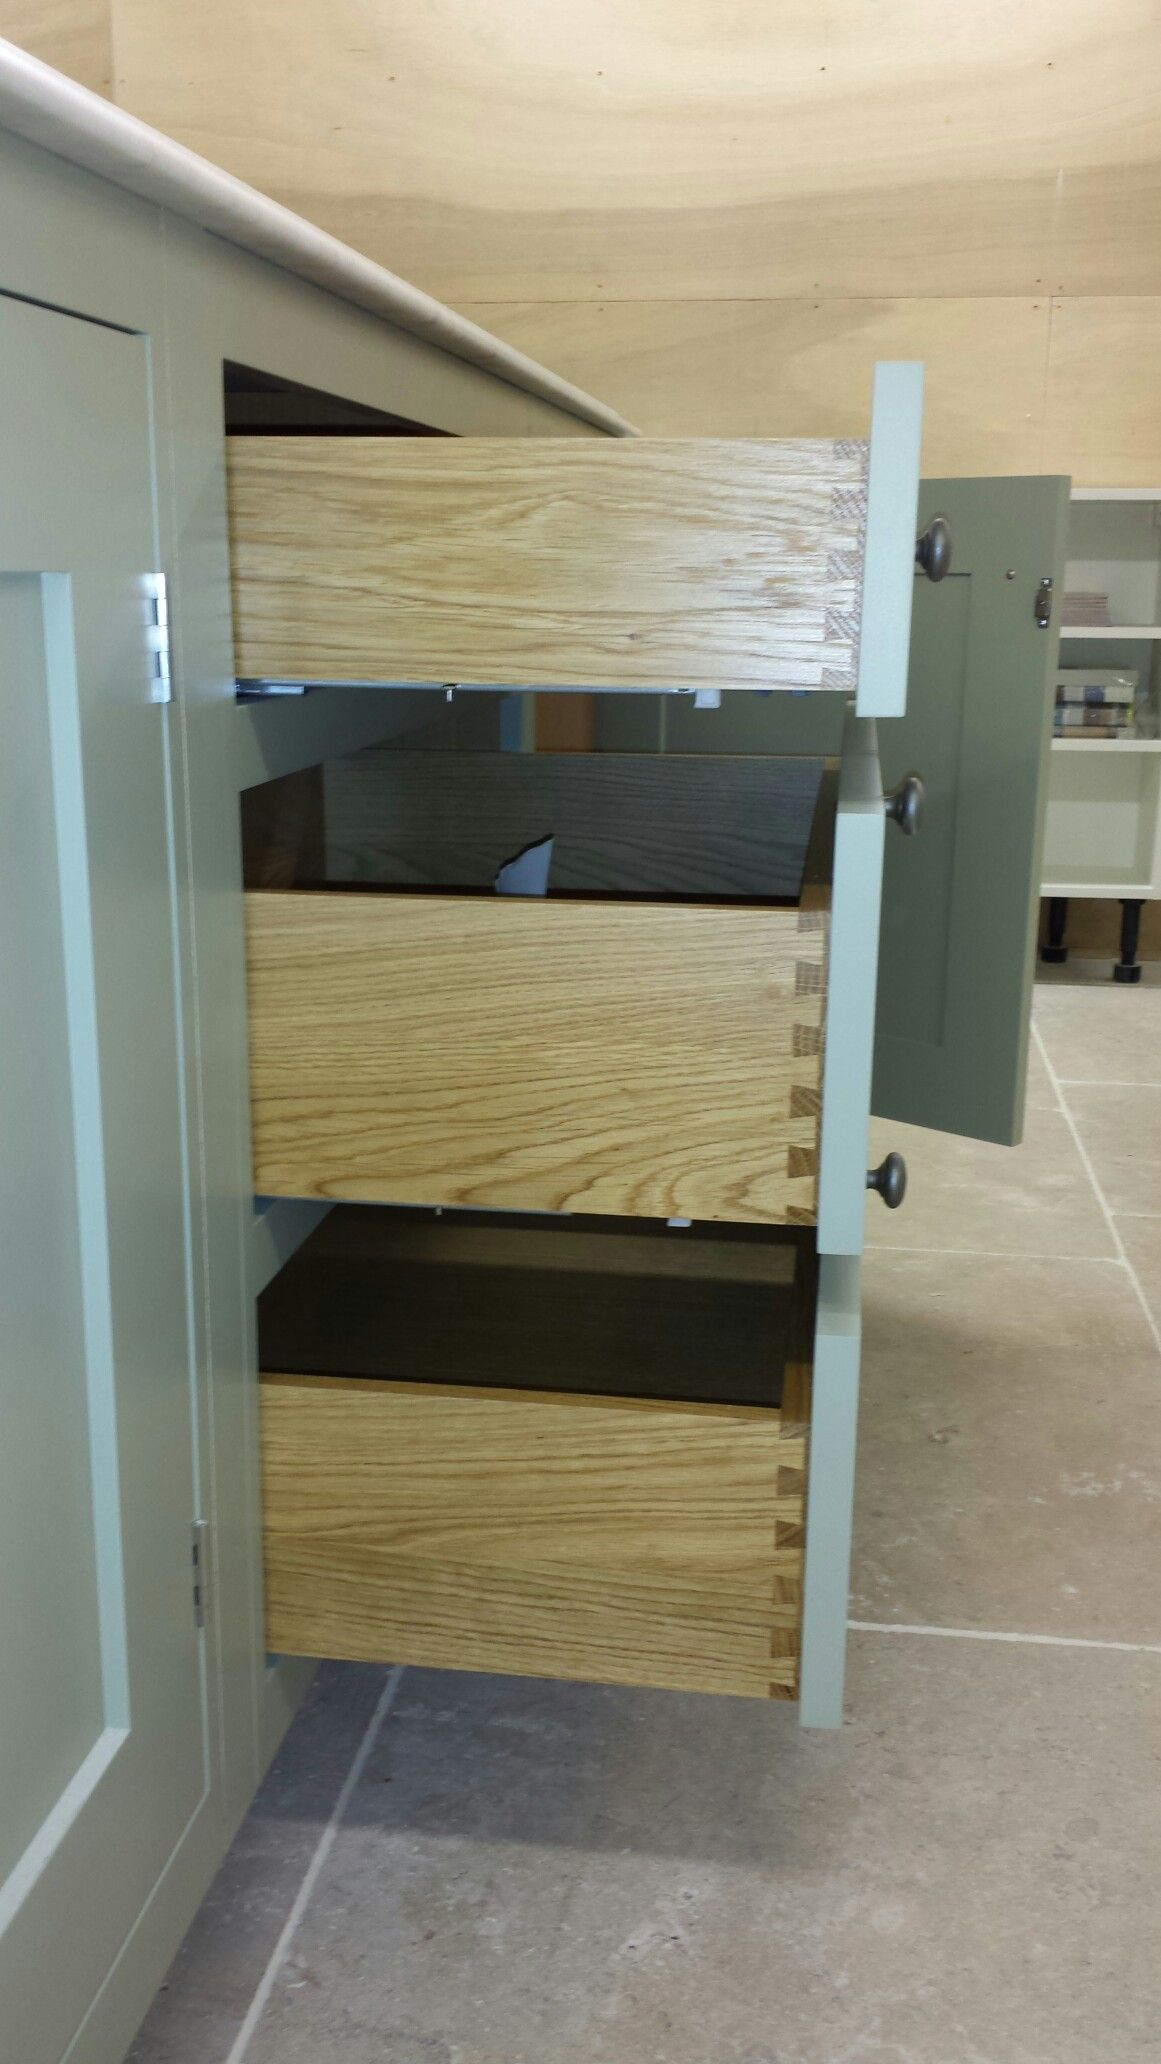 Solid Oak Drawer Boxes With Dovetail Joints Bespoke Kitchens Furniture Solid Oak